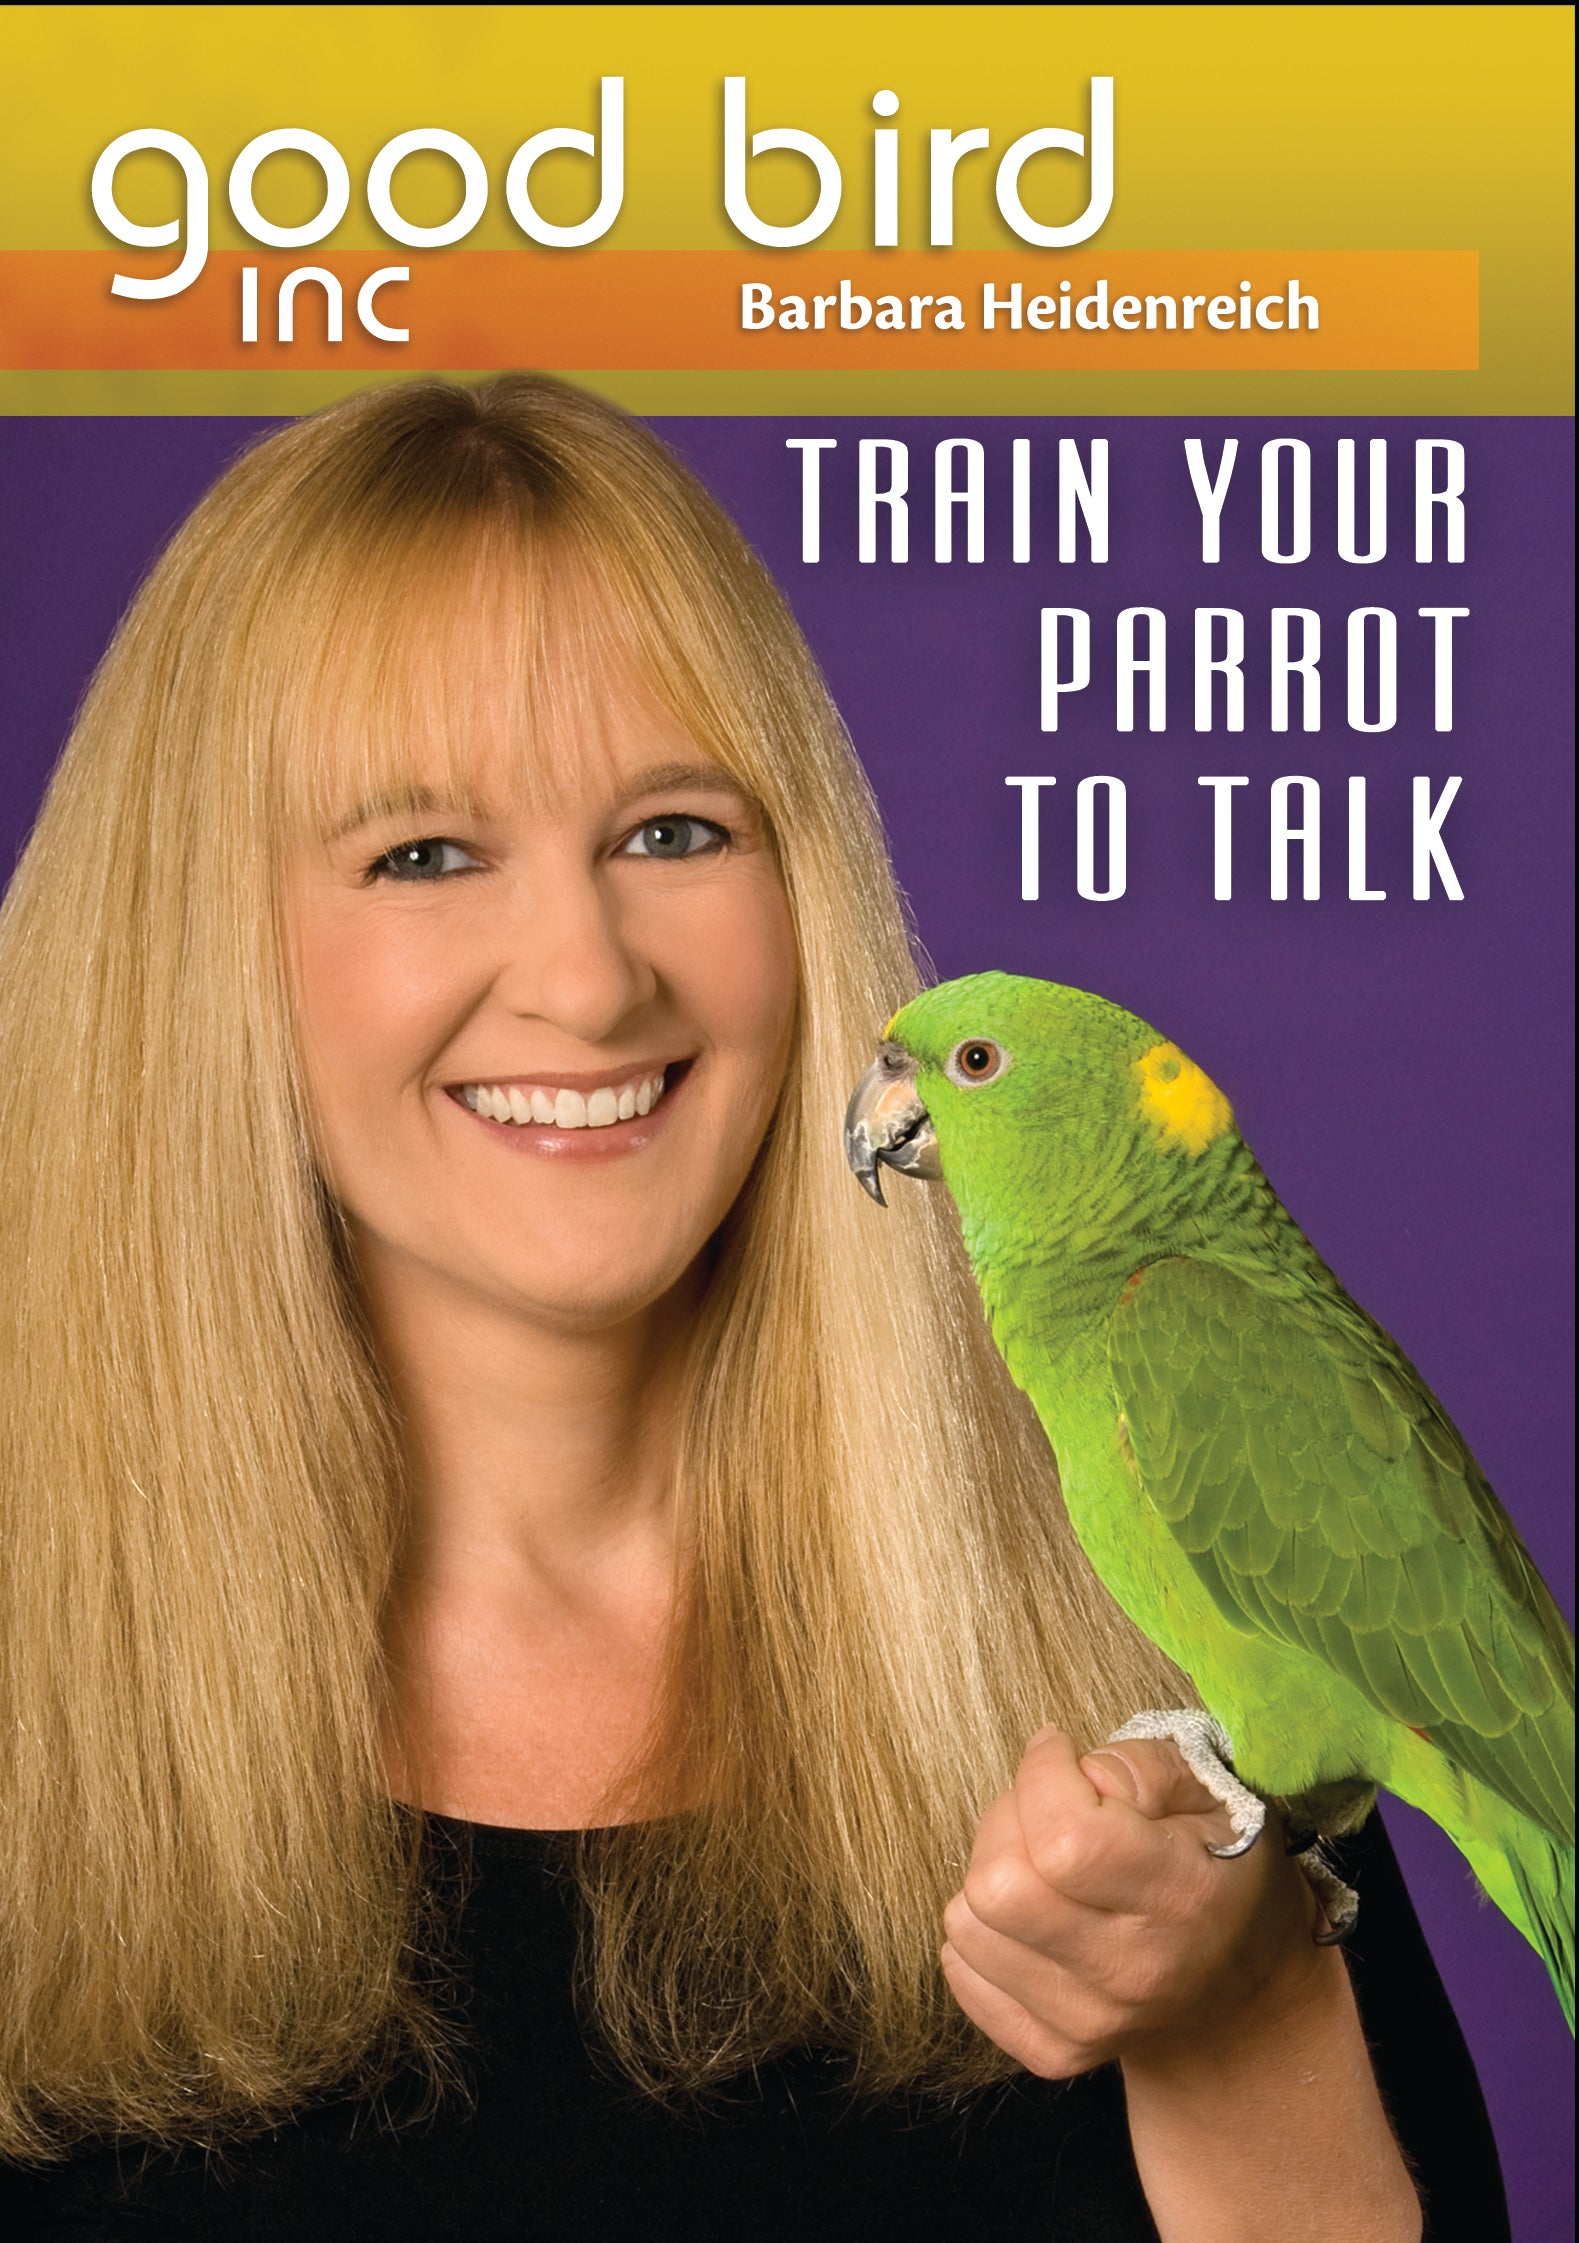 DVD—Train Your Parrot to Talk (43 mins)